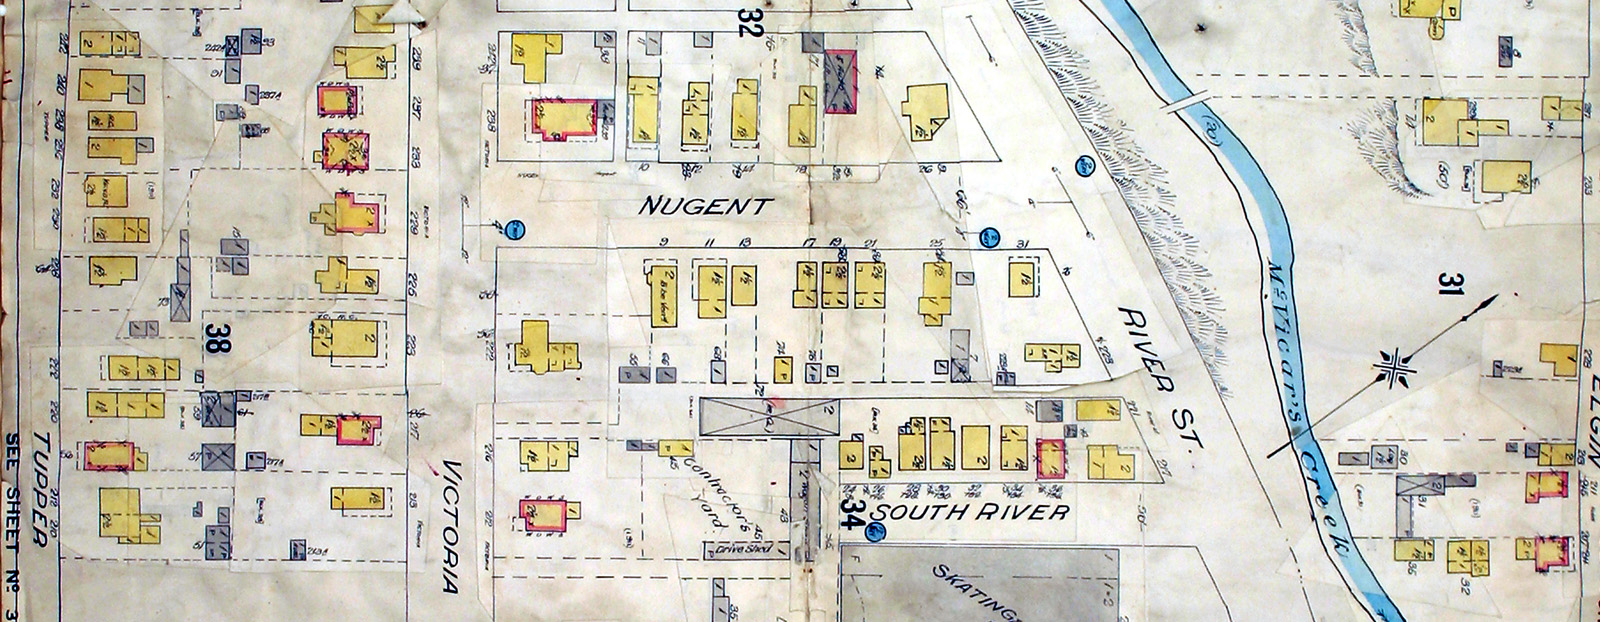 A cut out section of a map showing housing lots and streets